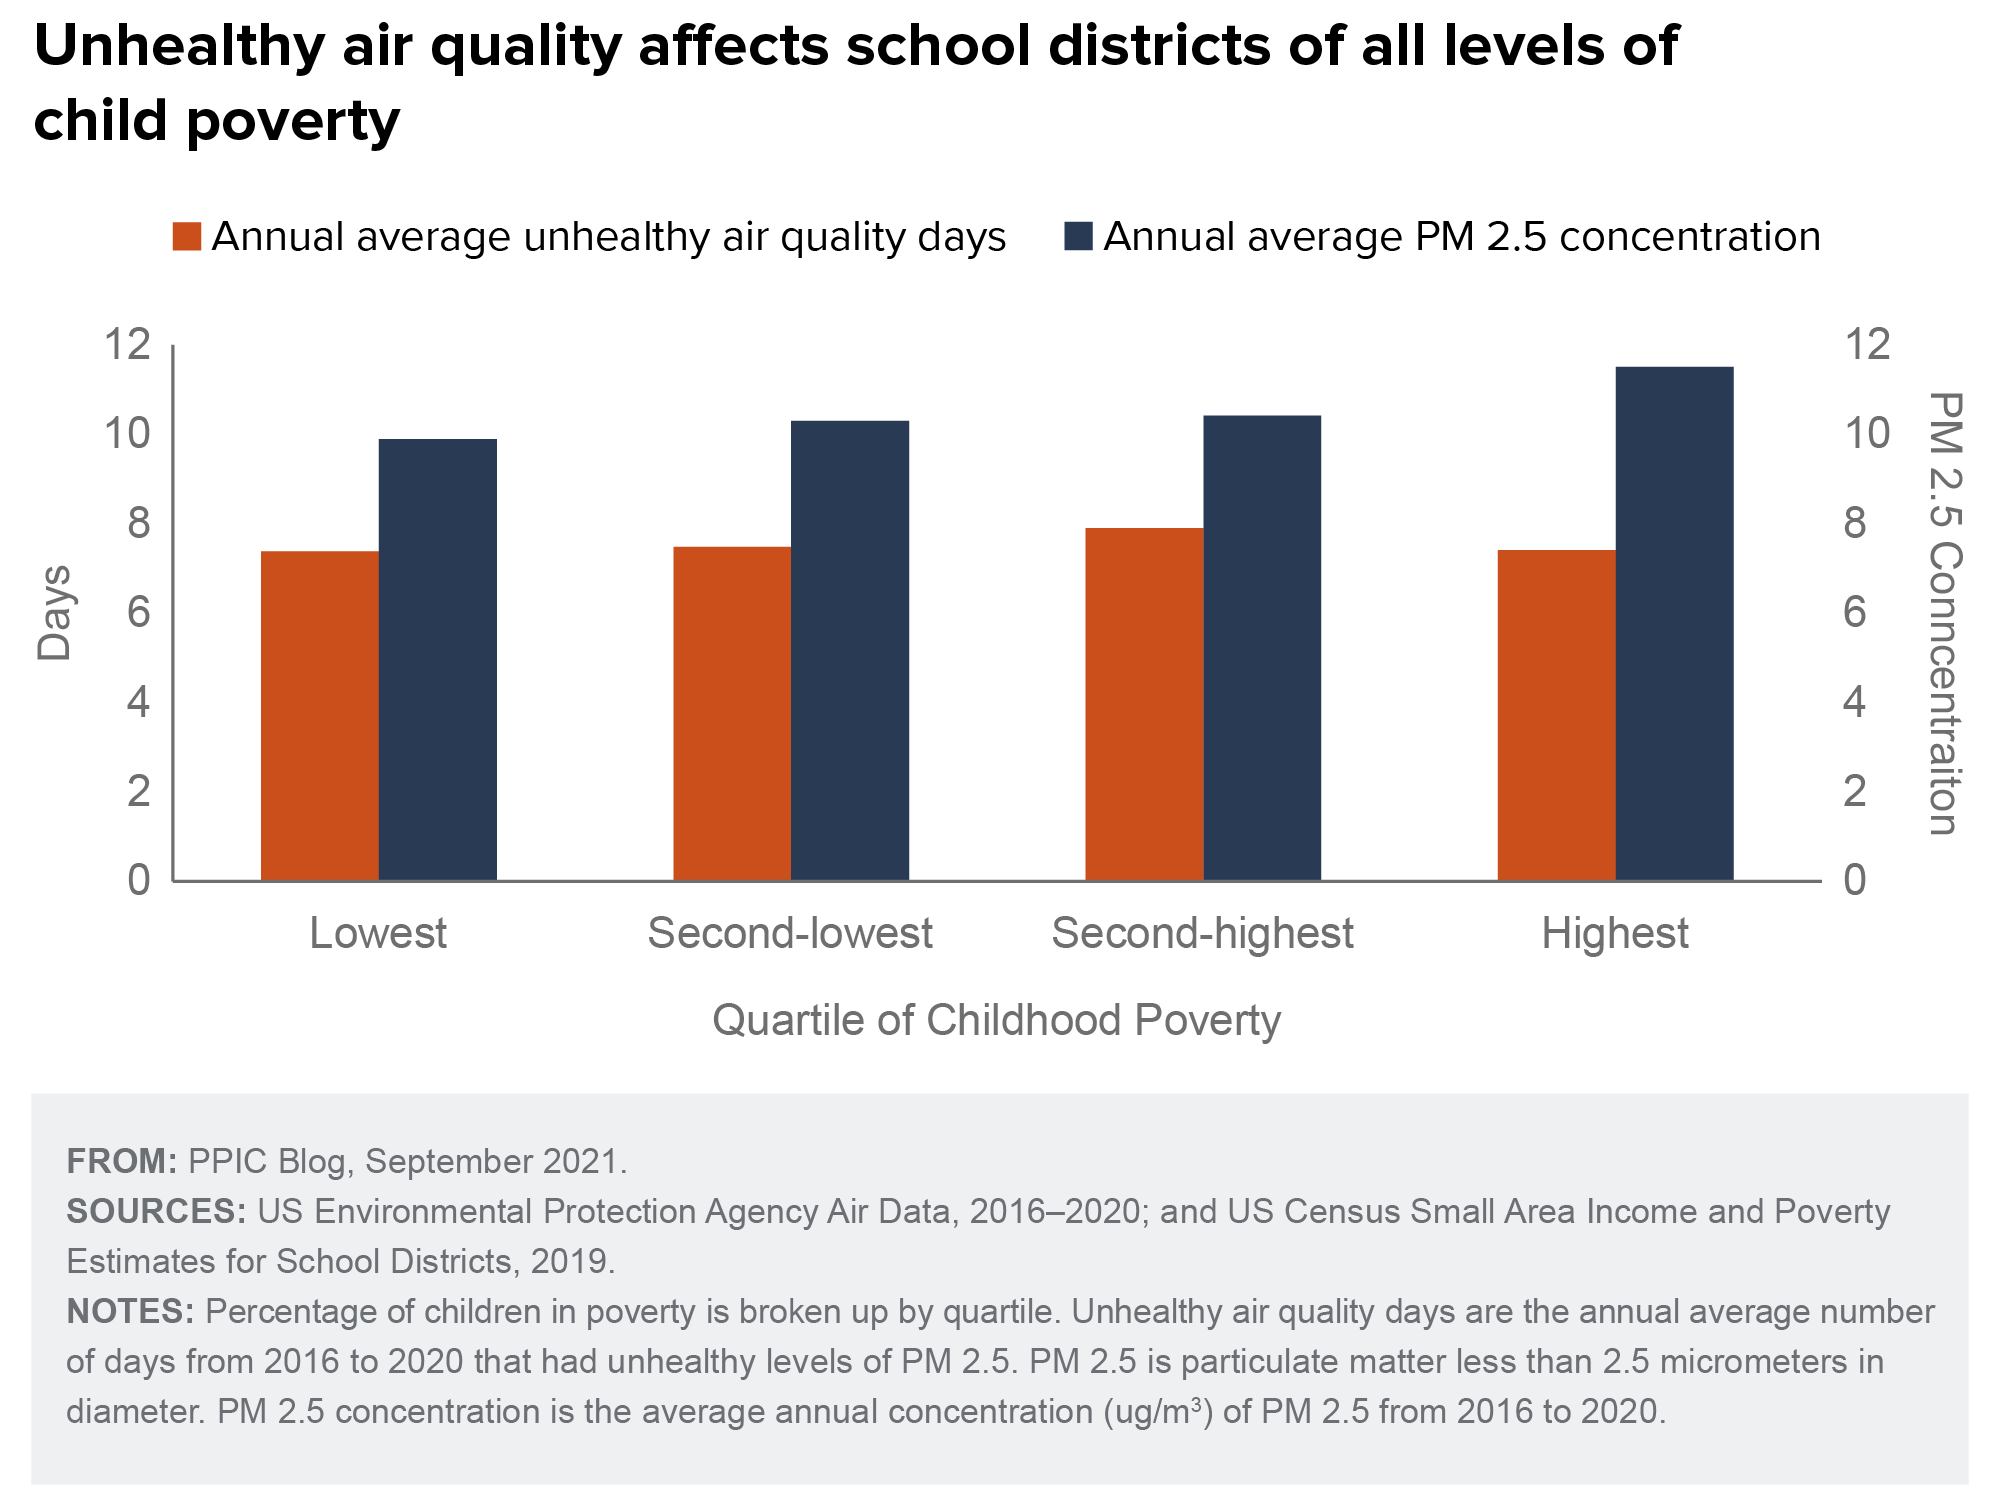 figure - Unhealthy air quality affects school districts of all levels of child poverty